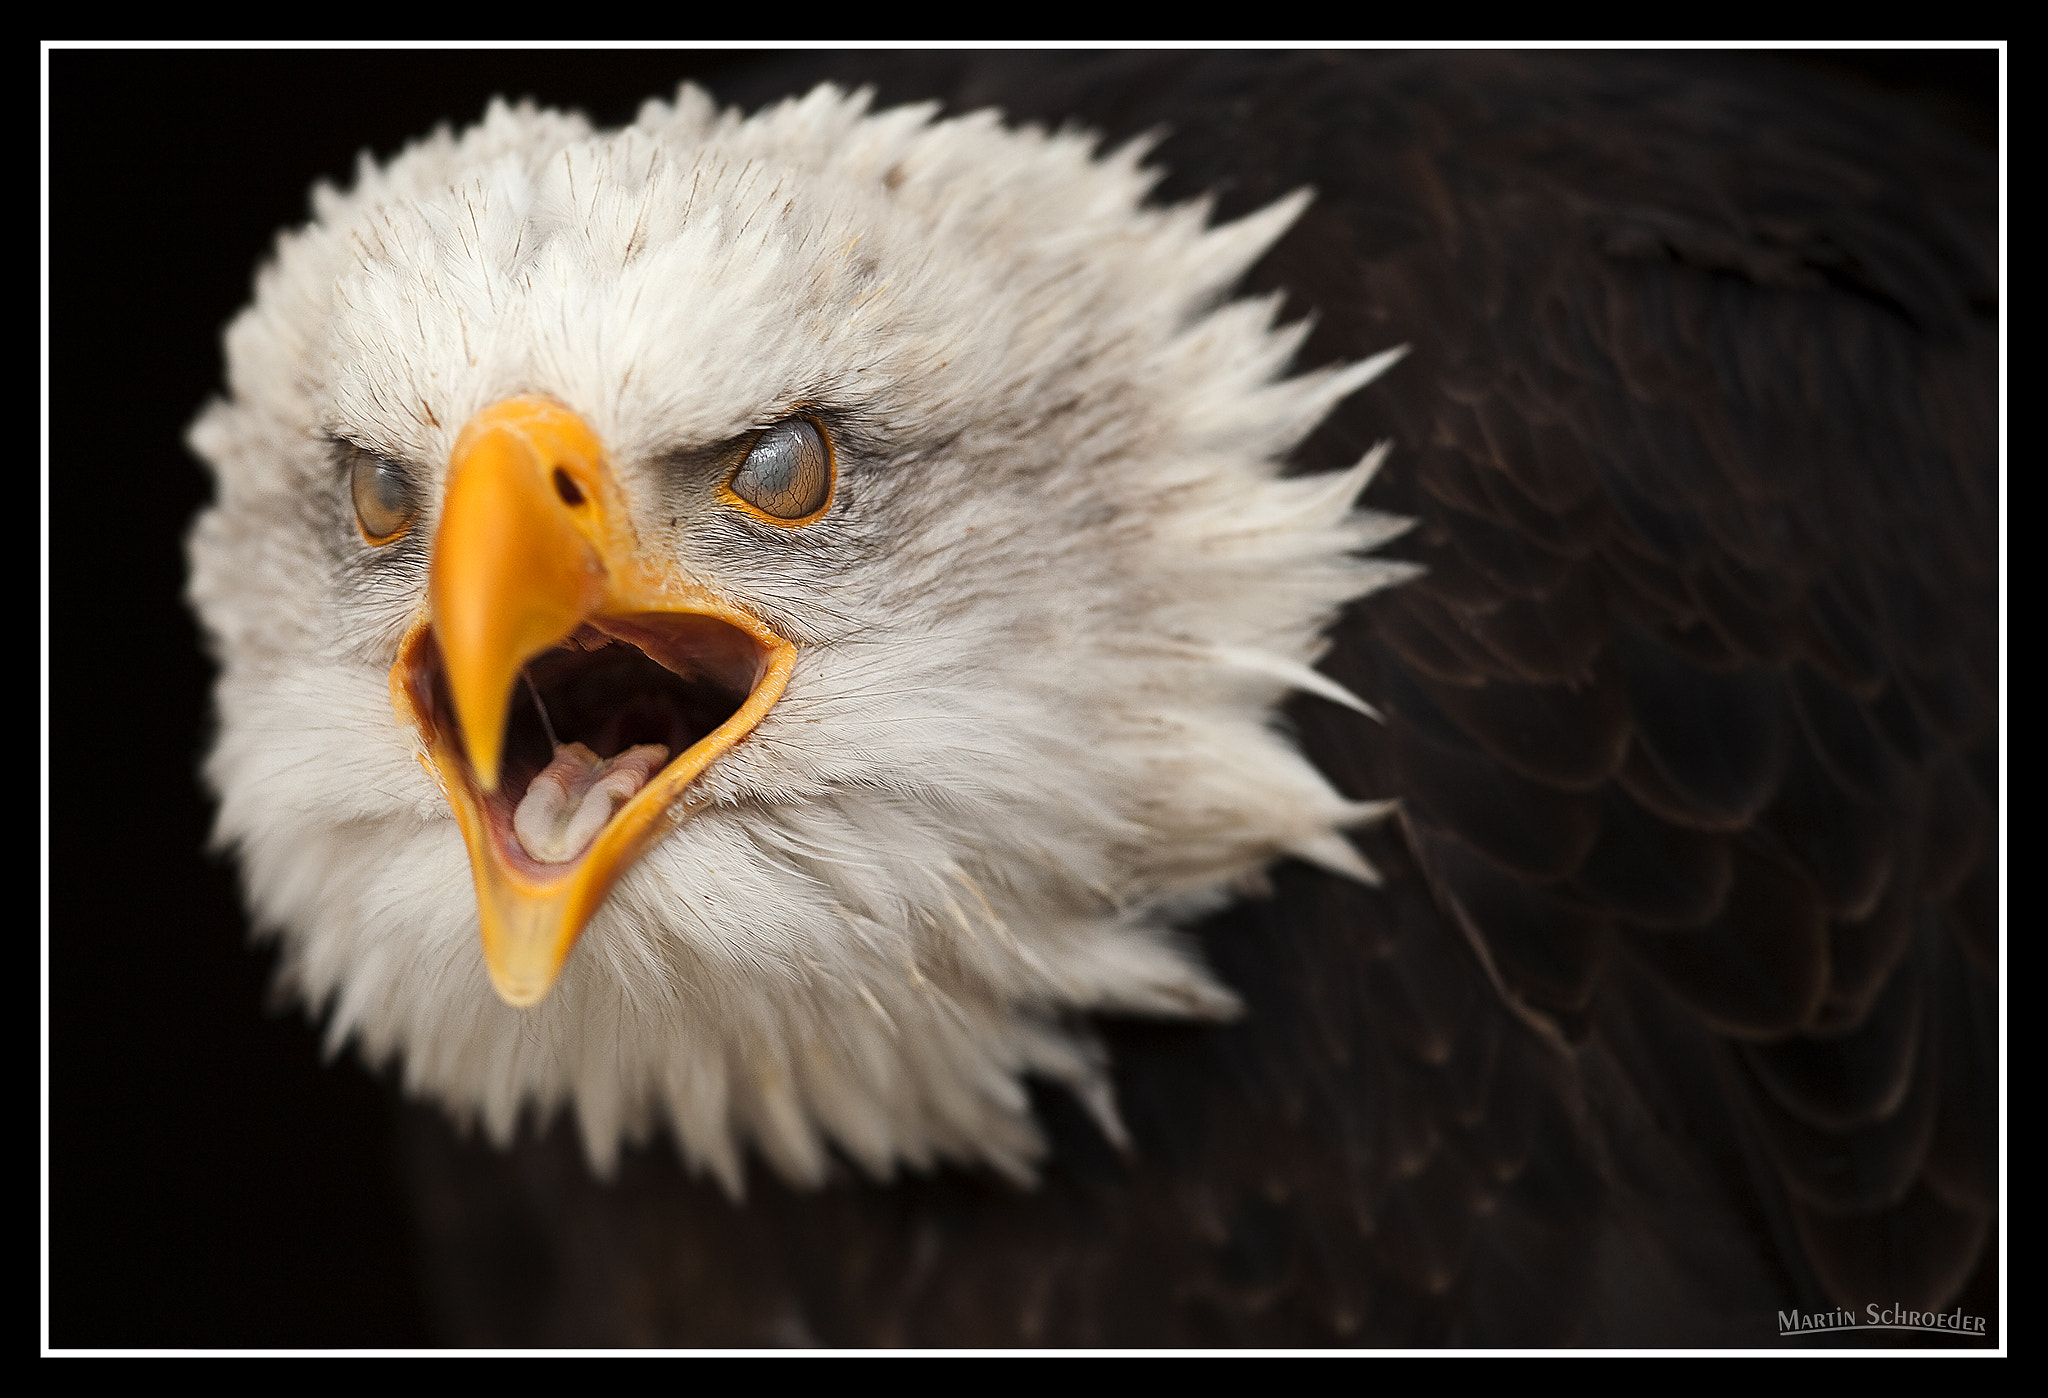 Photograph Bald eagle with veinous nictitating membrane by Martin Schroeder on 500px